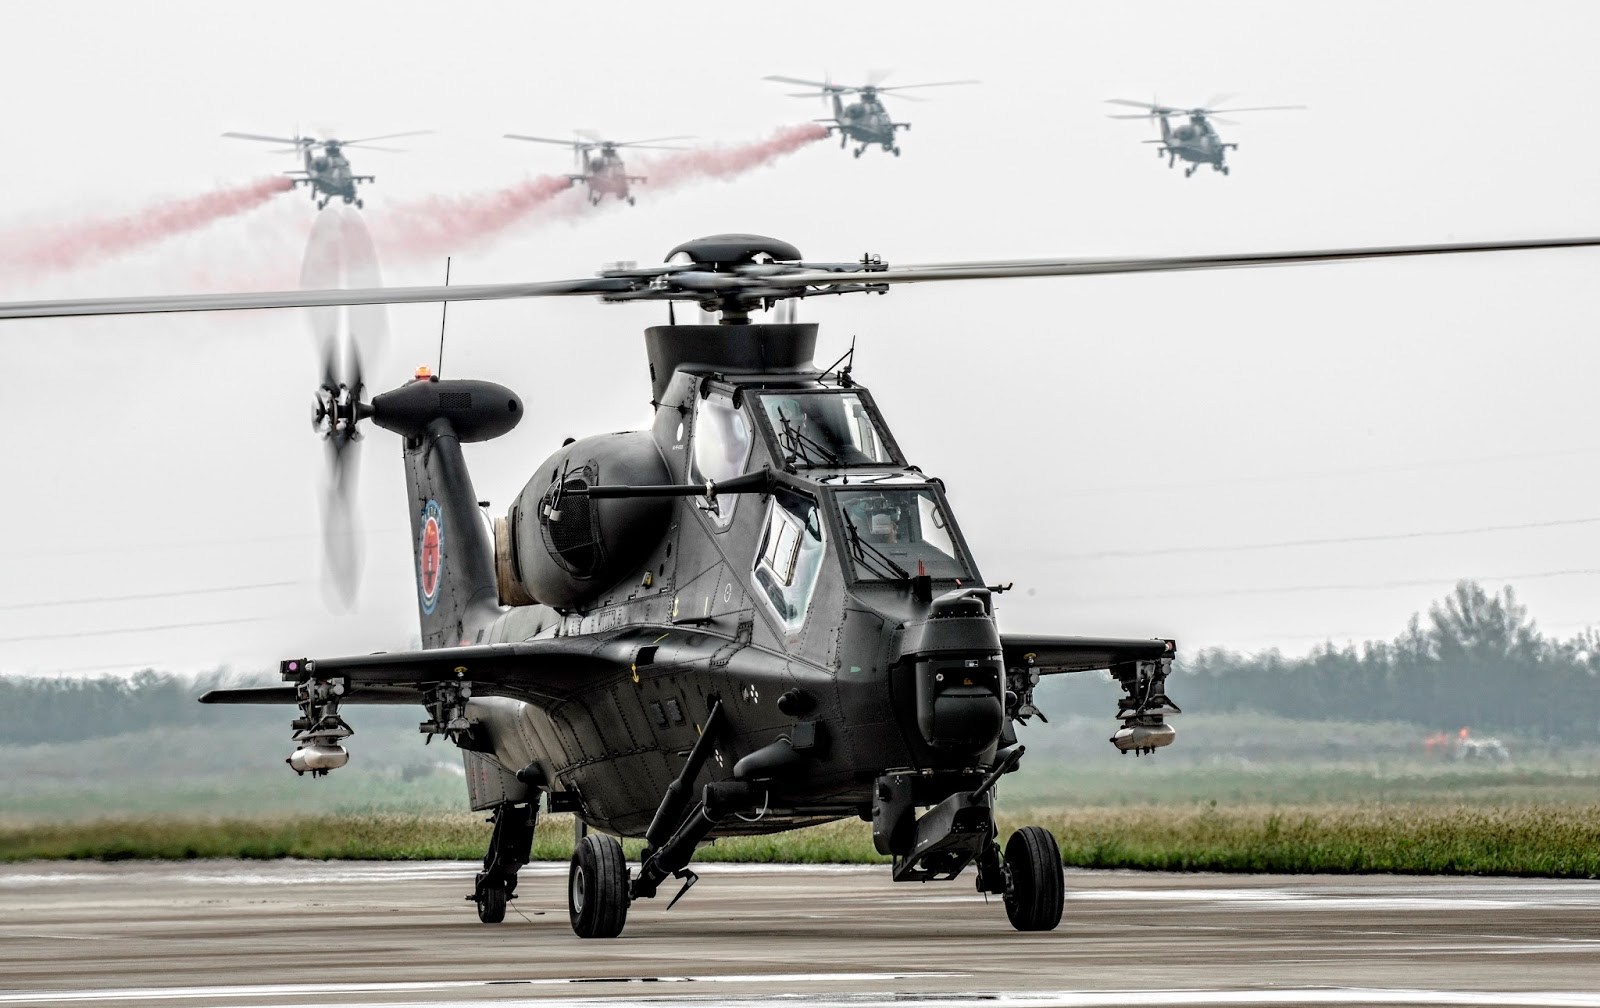 WZ-10 0+armed+Chinese+Z-10+Attack+Helicopter+gunship+PLA+Peoples+Liberation+Army+Air+Force+abcdefexport+pakitan+missile+hj10+atgm+rocket+wz-10+radaraam+++WZ-9+turboshaft+engine+firing+4th+5+6+7+8+9akd-10+navy+(5)